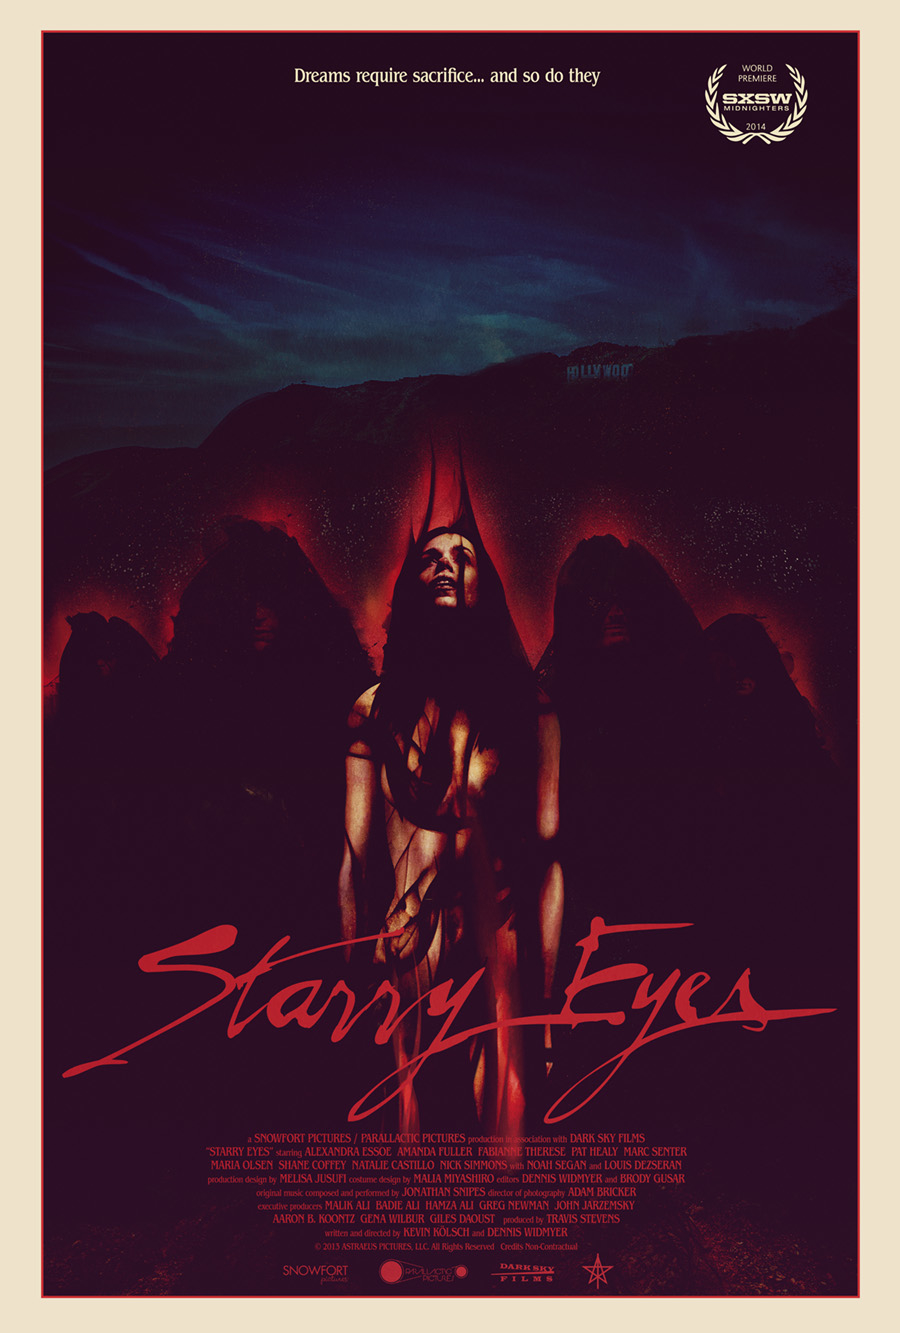 STARRY_EYES_ONE-SHEET_FINAL_W_LAUREL-1